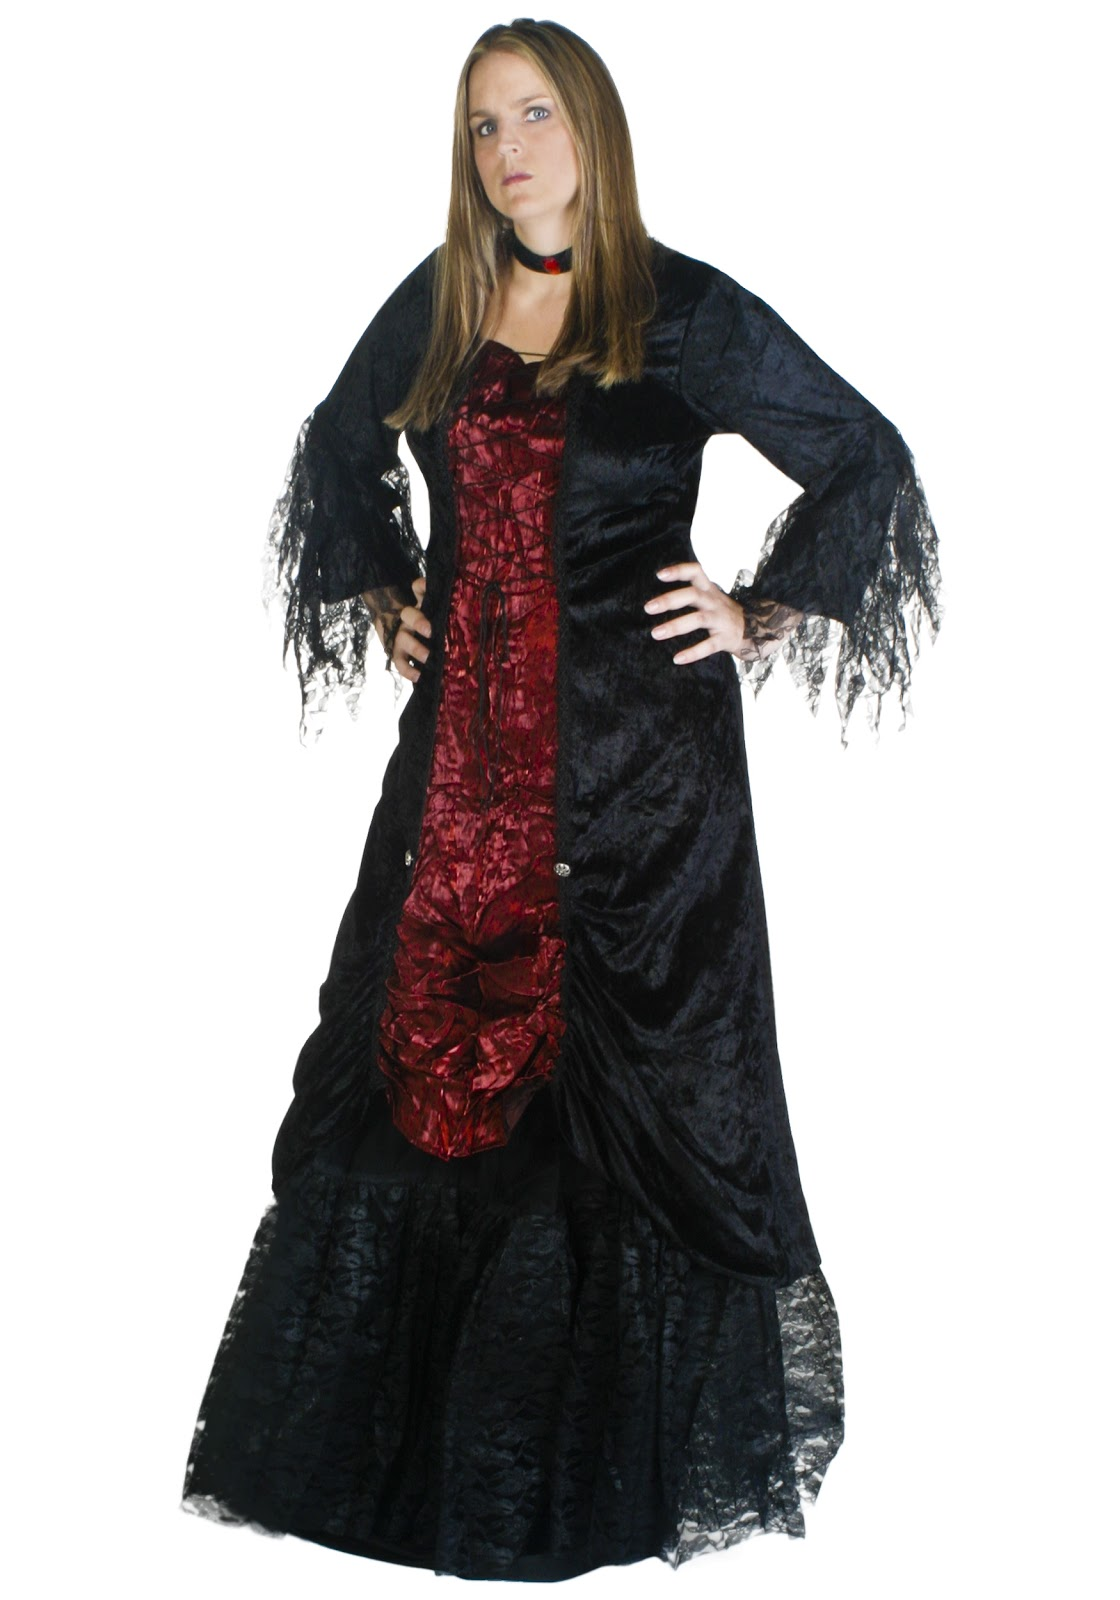 trends of halloween costumes in different kinds dracula